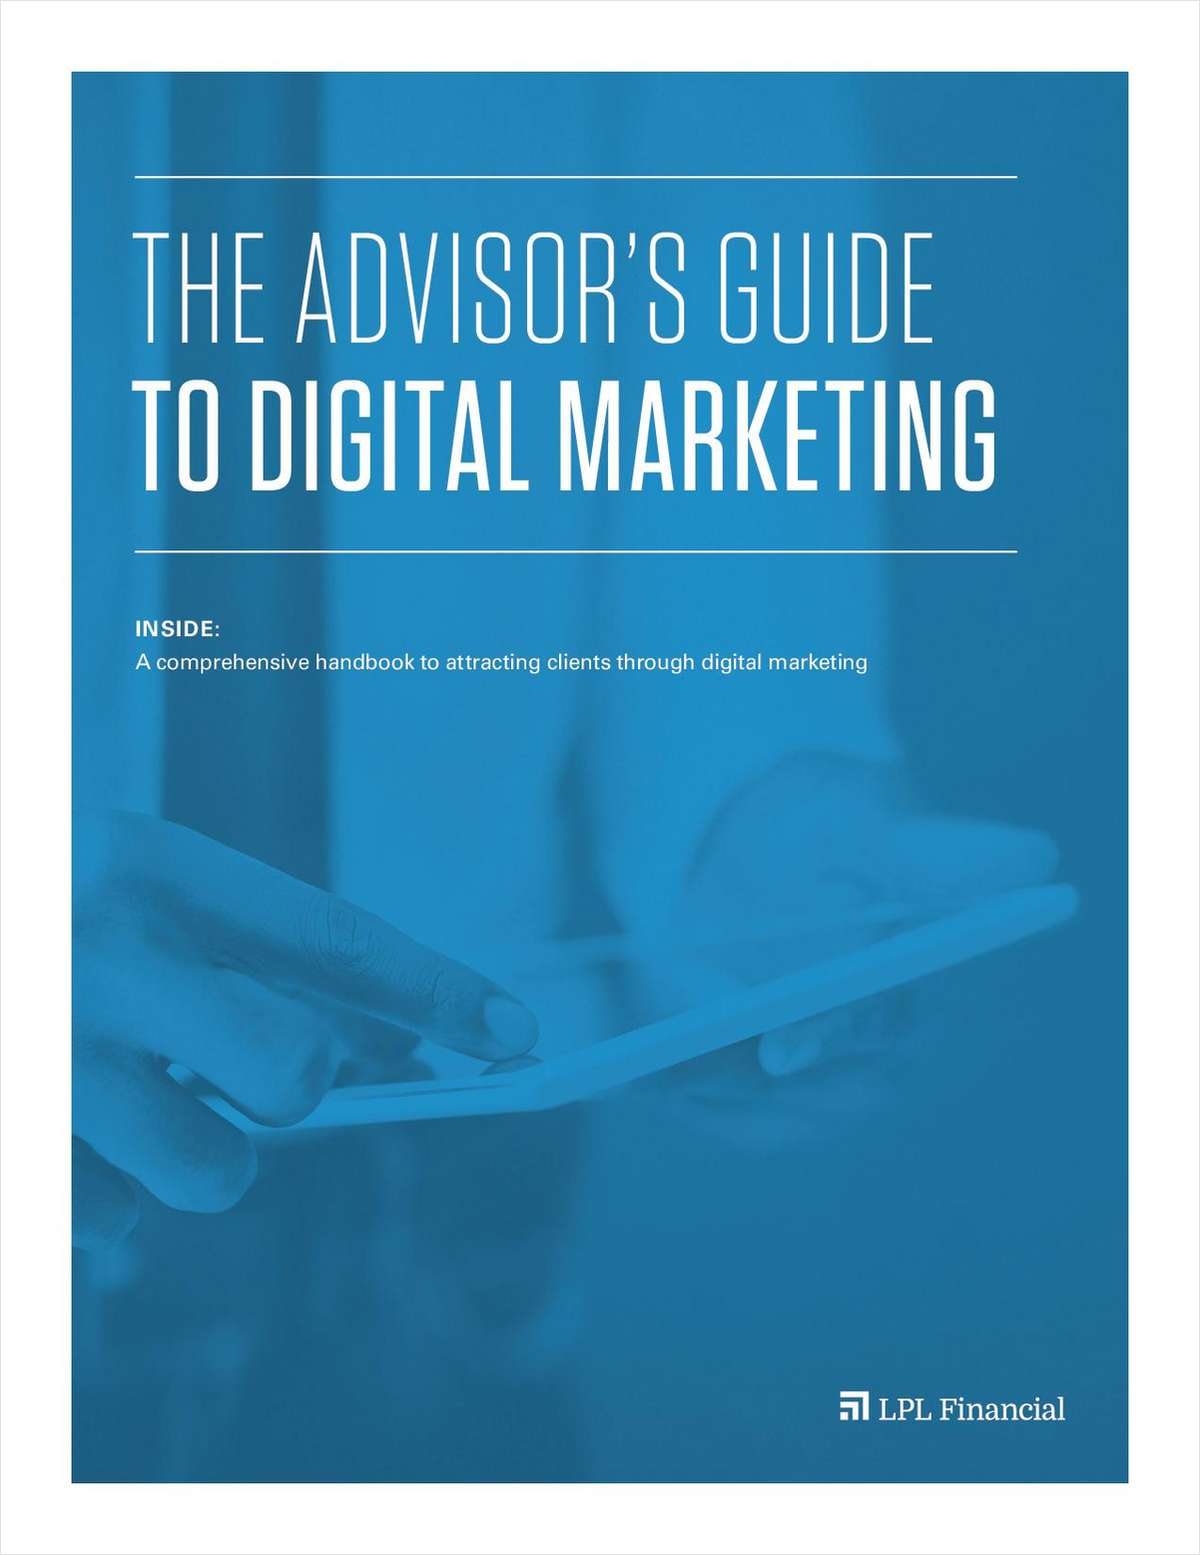 The Advisor's Guide to Digital Marketing